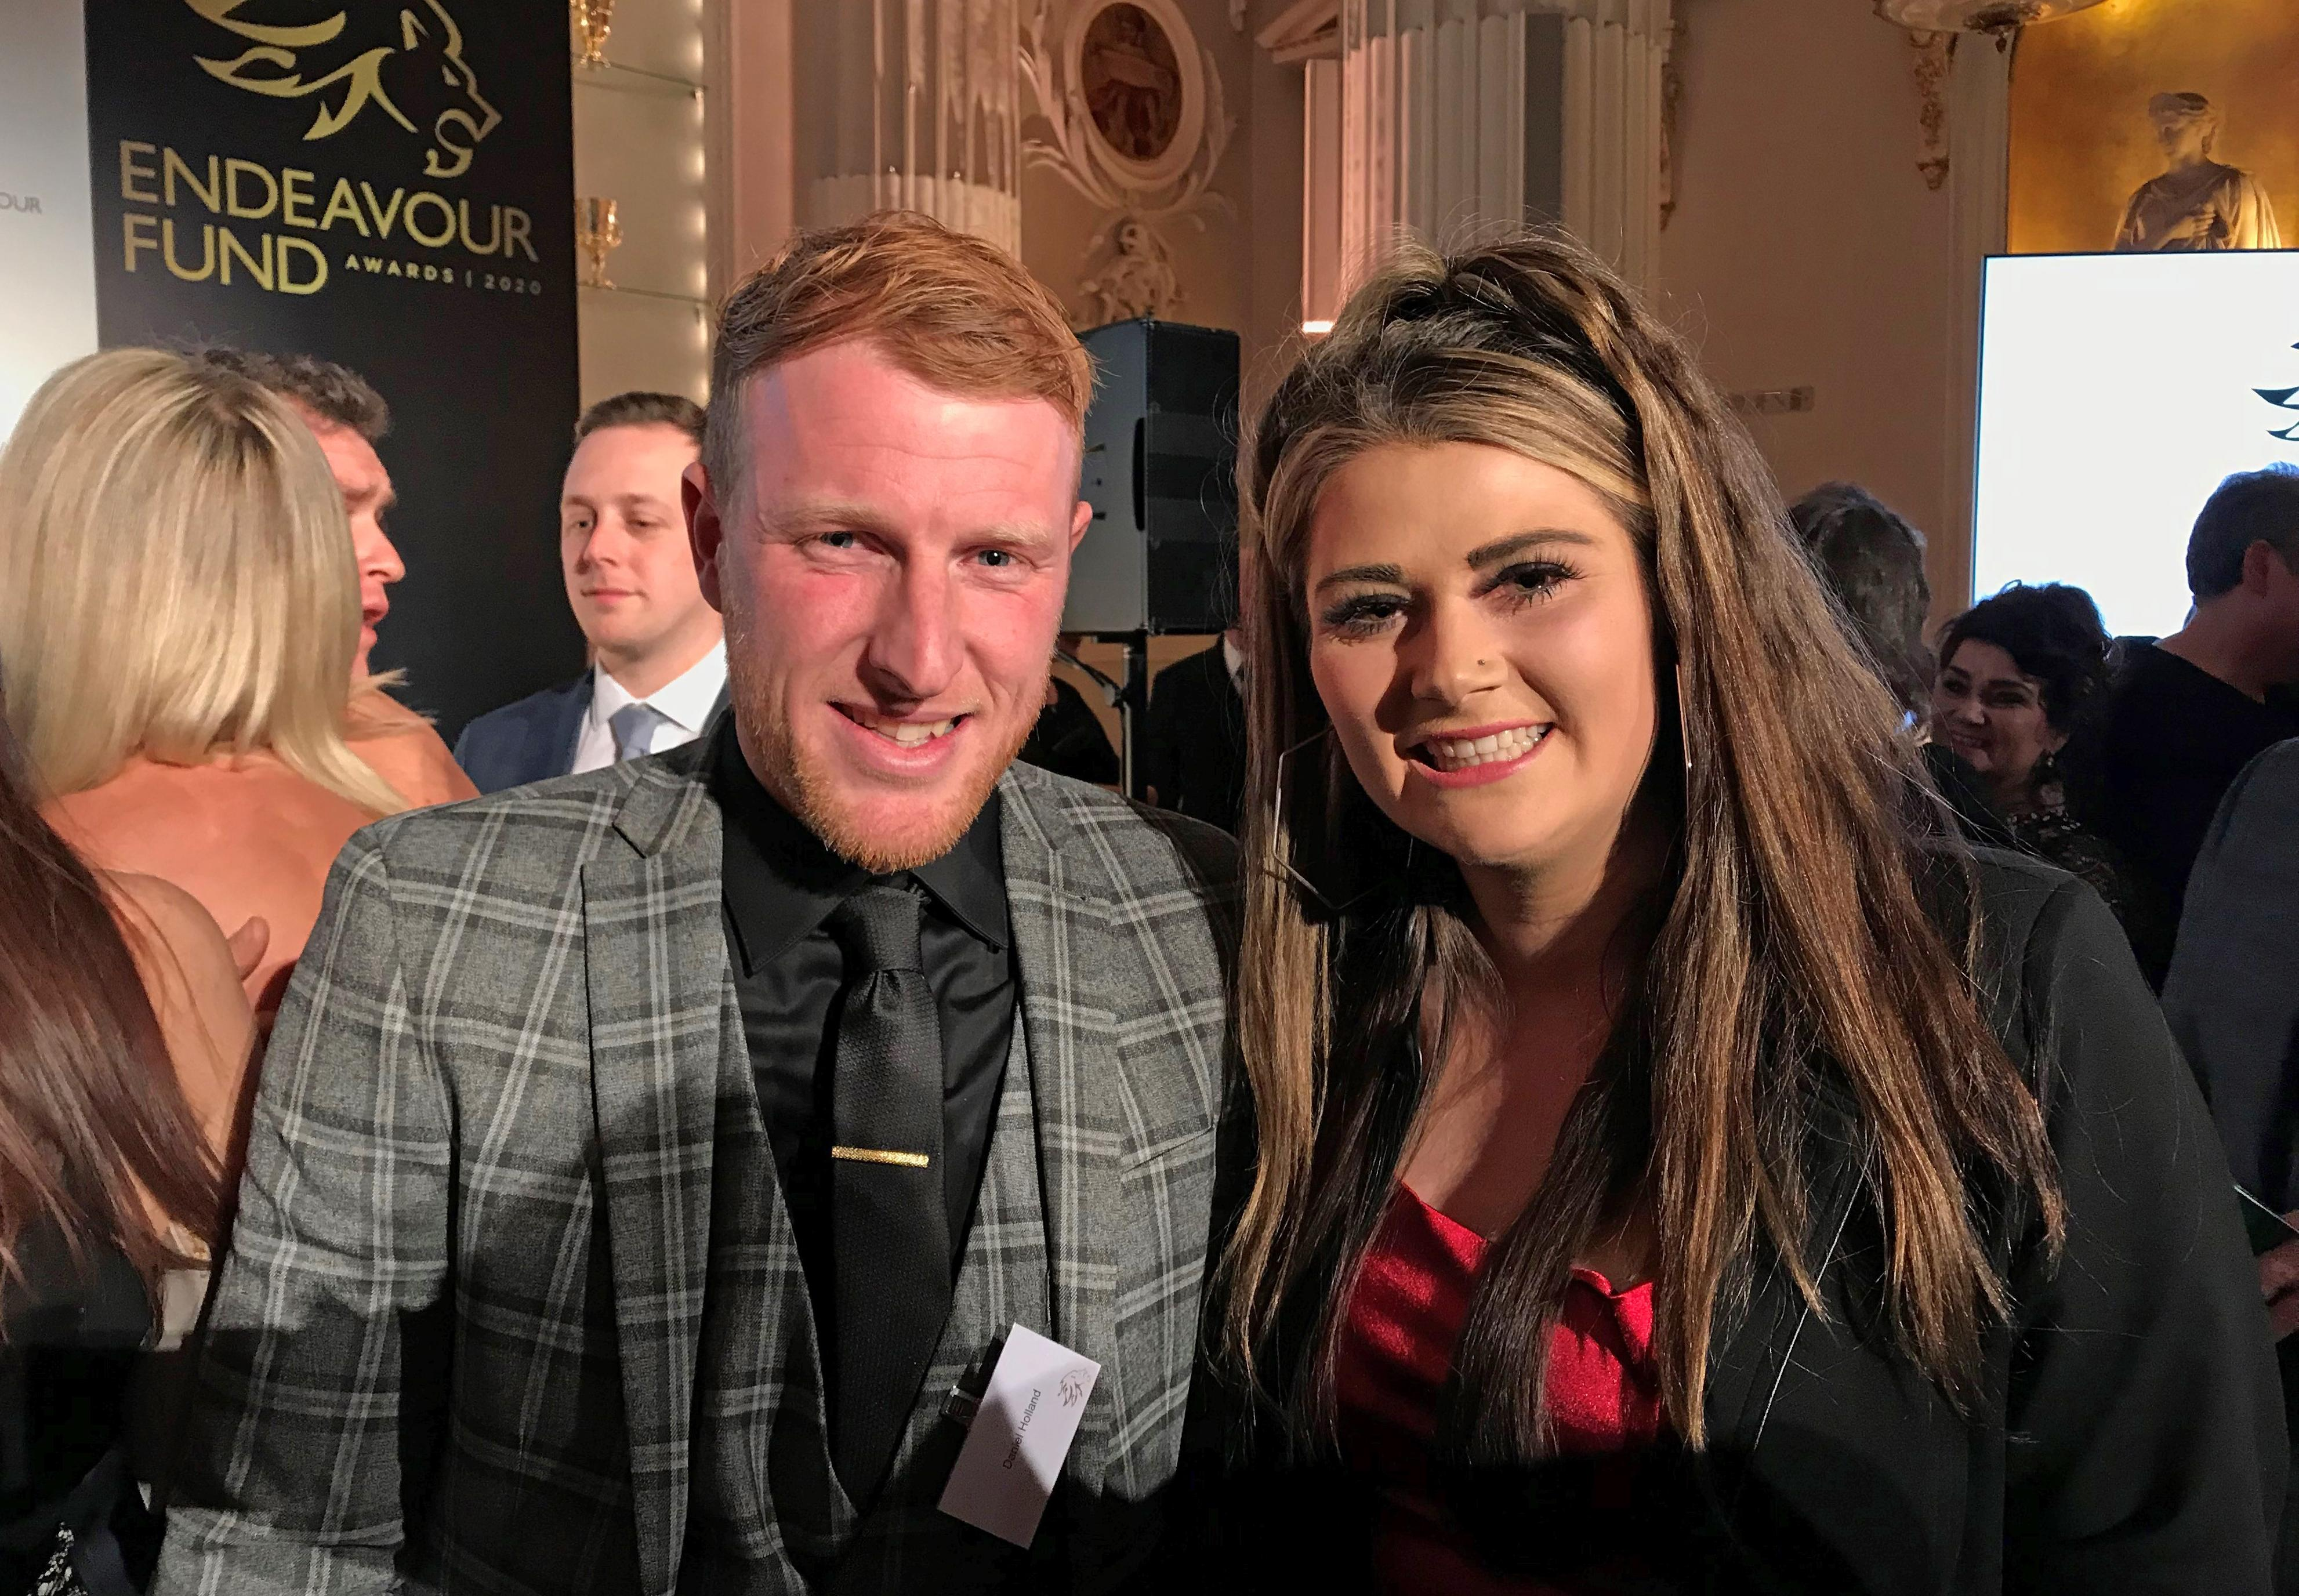 Danny Holland with his fiance Lauren Price. who he proposed to in front of the Duke and Duchess of Sussex at the Endeavour Fund Awards at Mansion House in London.